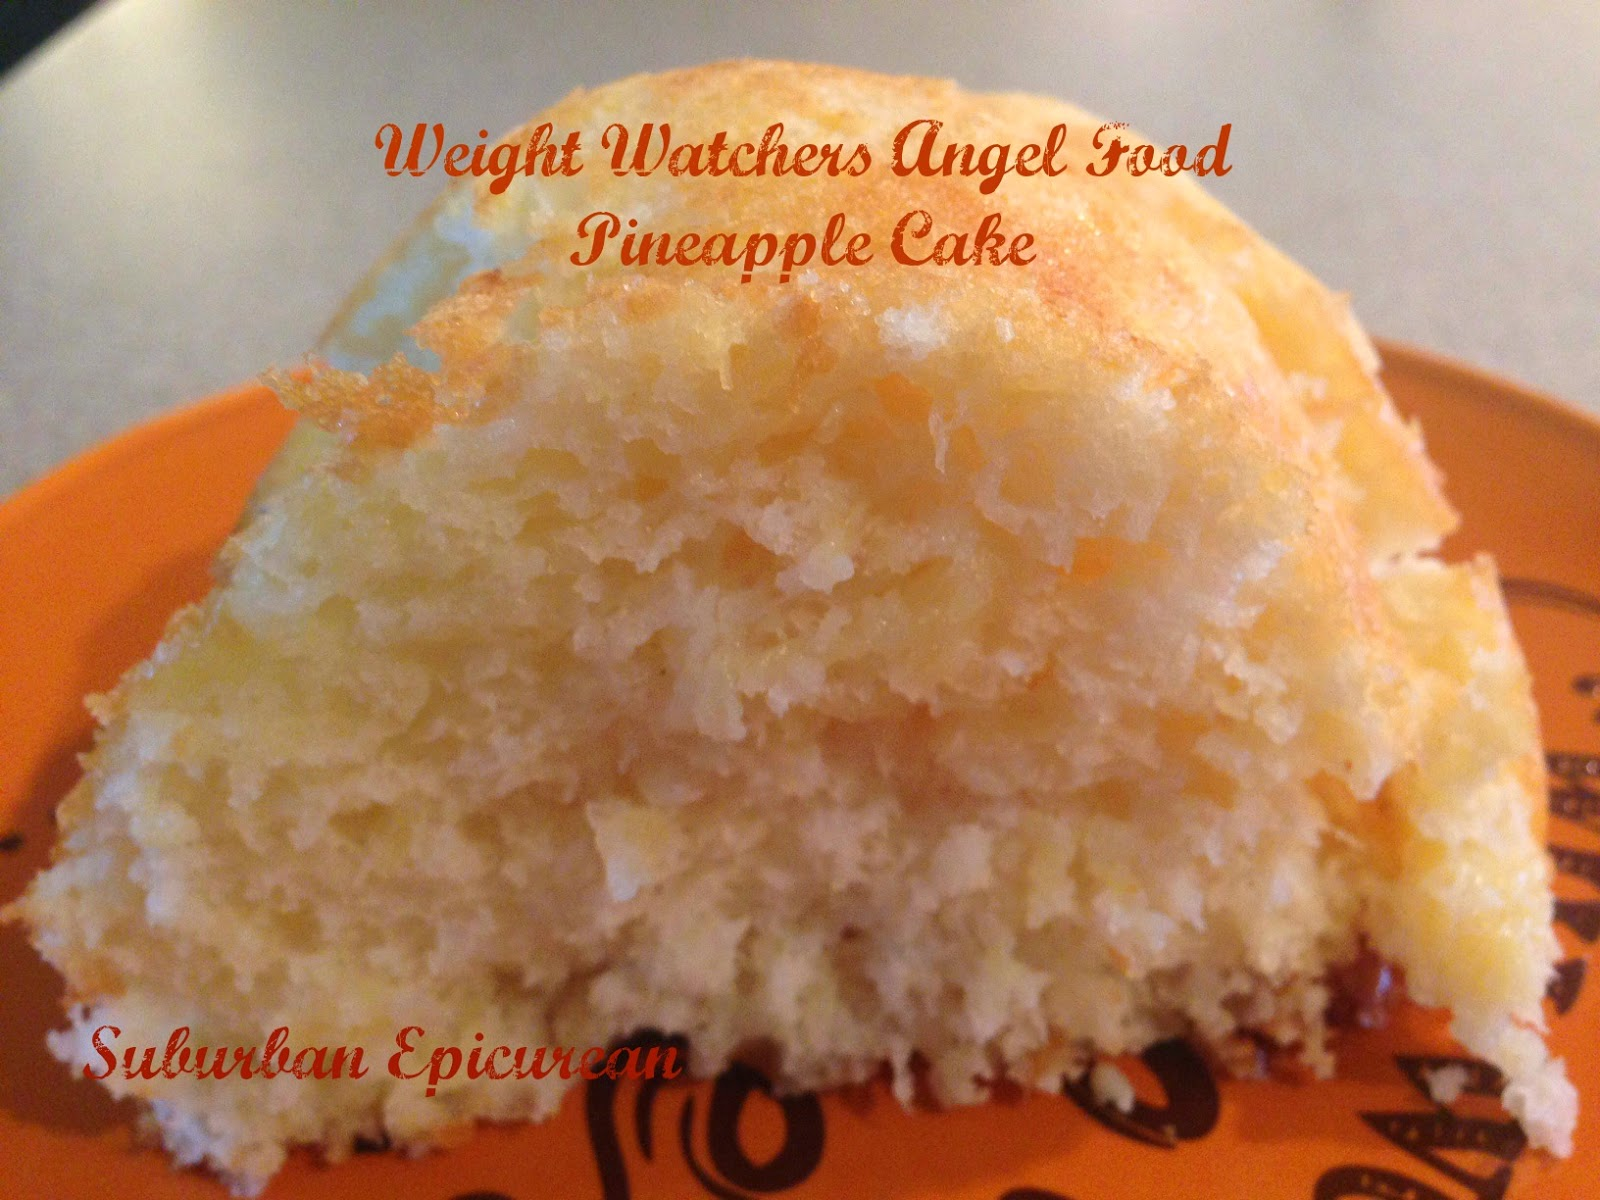 Suburban Epicurean Weight Watchers Angel Food Pineapple Cake